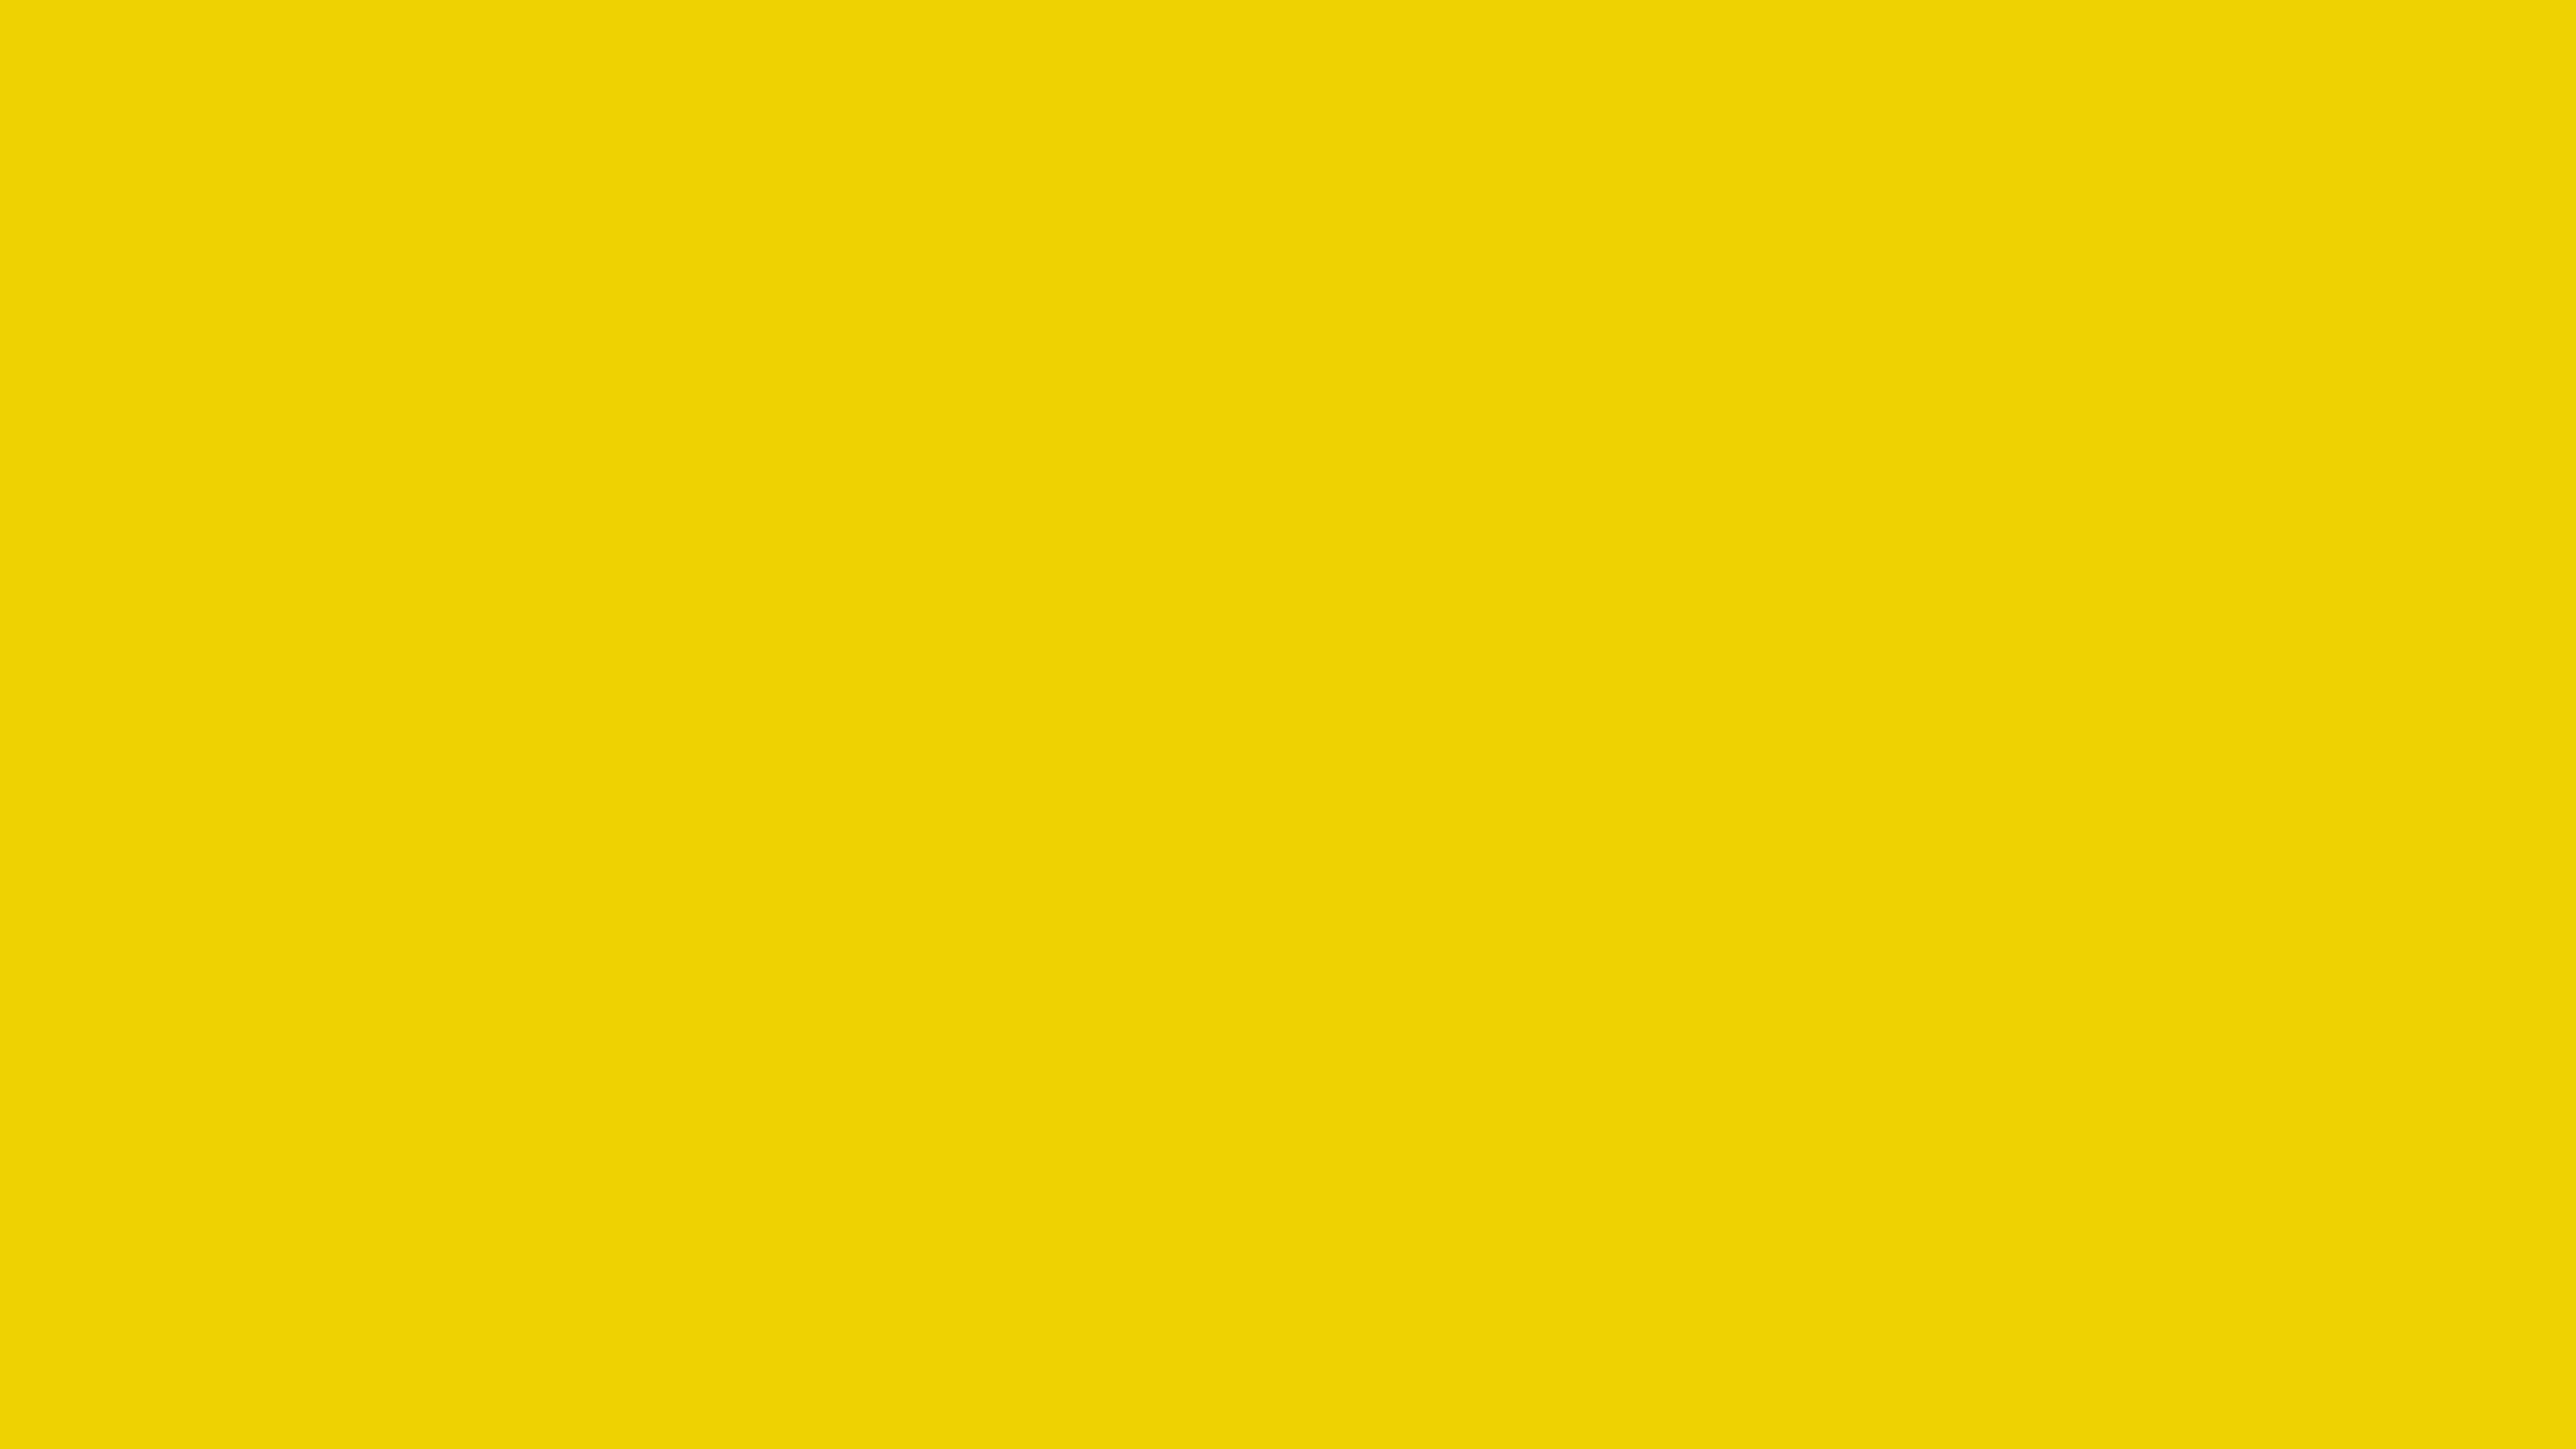 3840x2160 Safety Yellow Solid Color Background